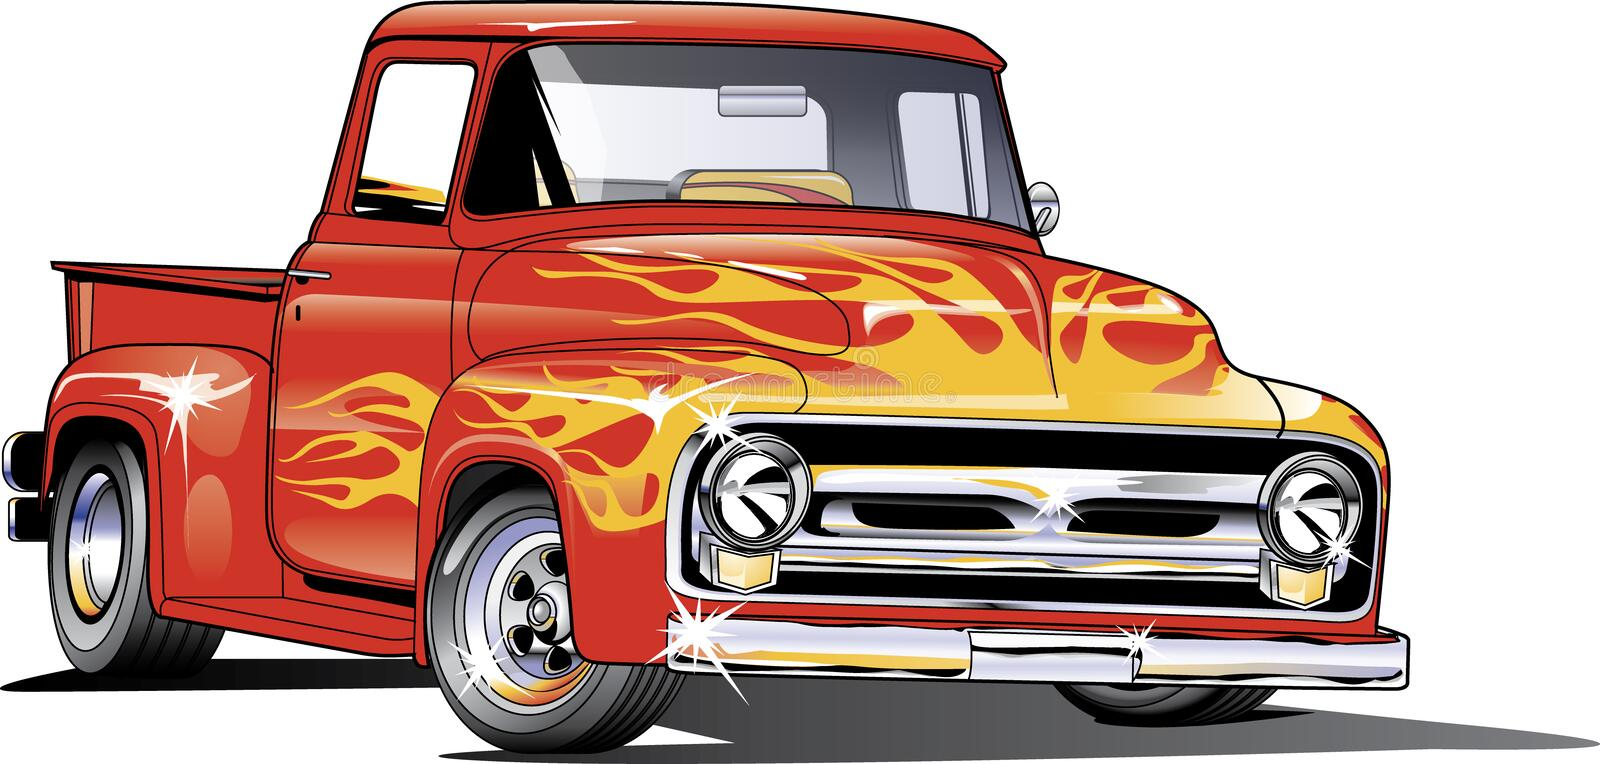 1954 Ford Hotrod truck stock photography